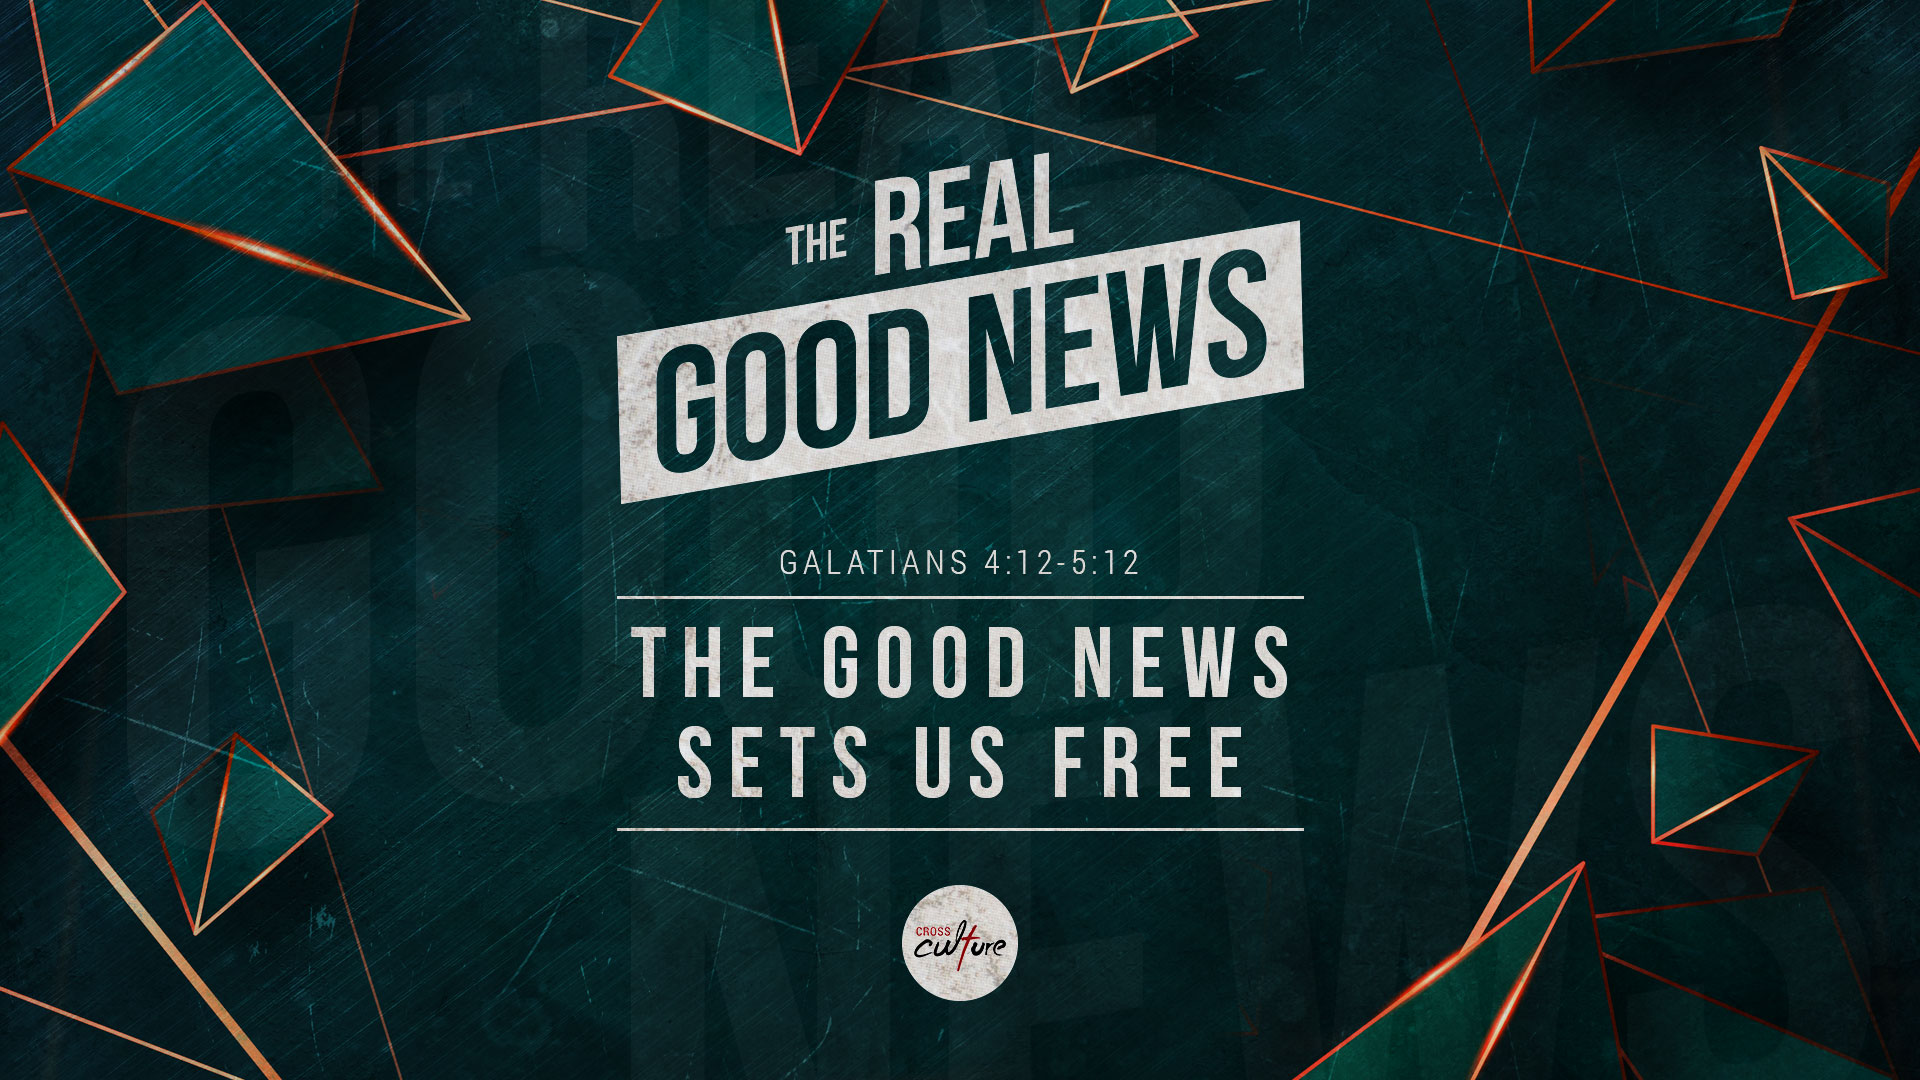 The Good News Sets Us Free